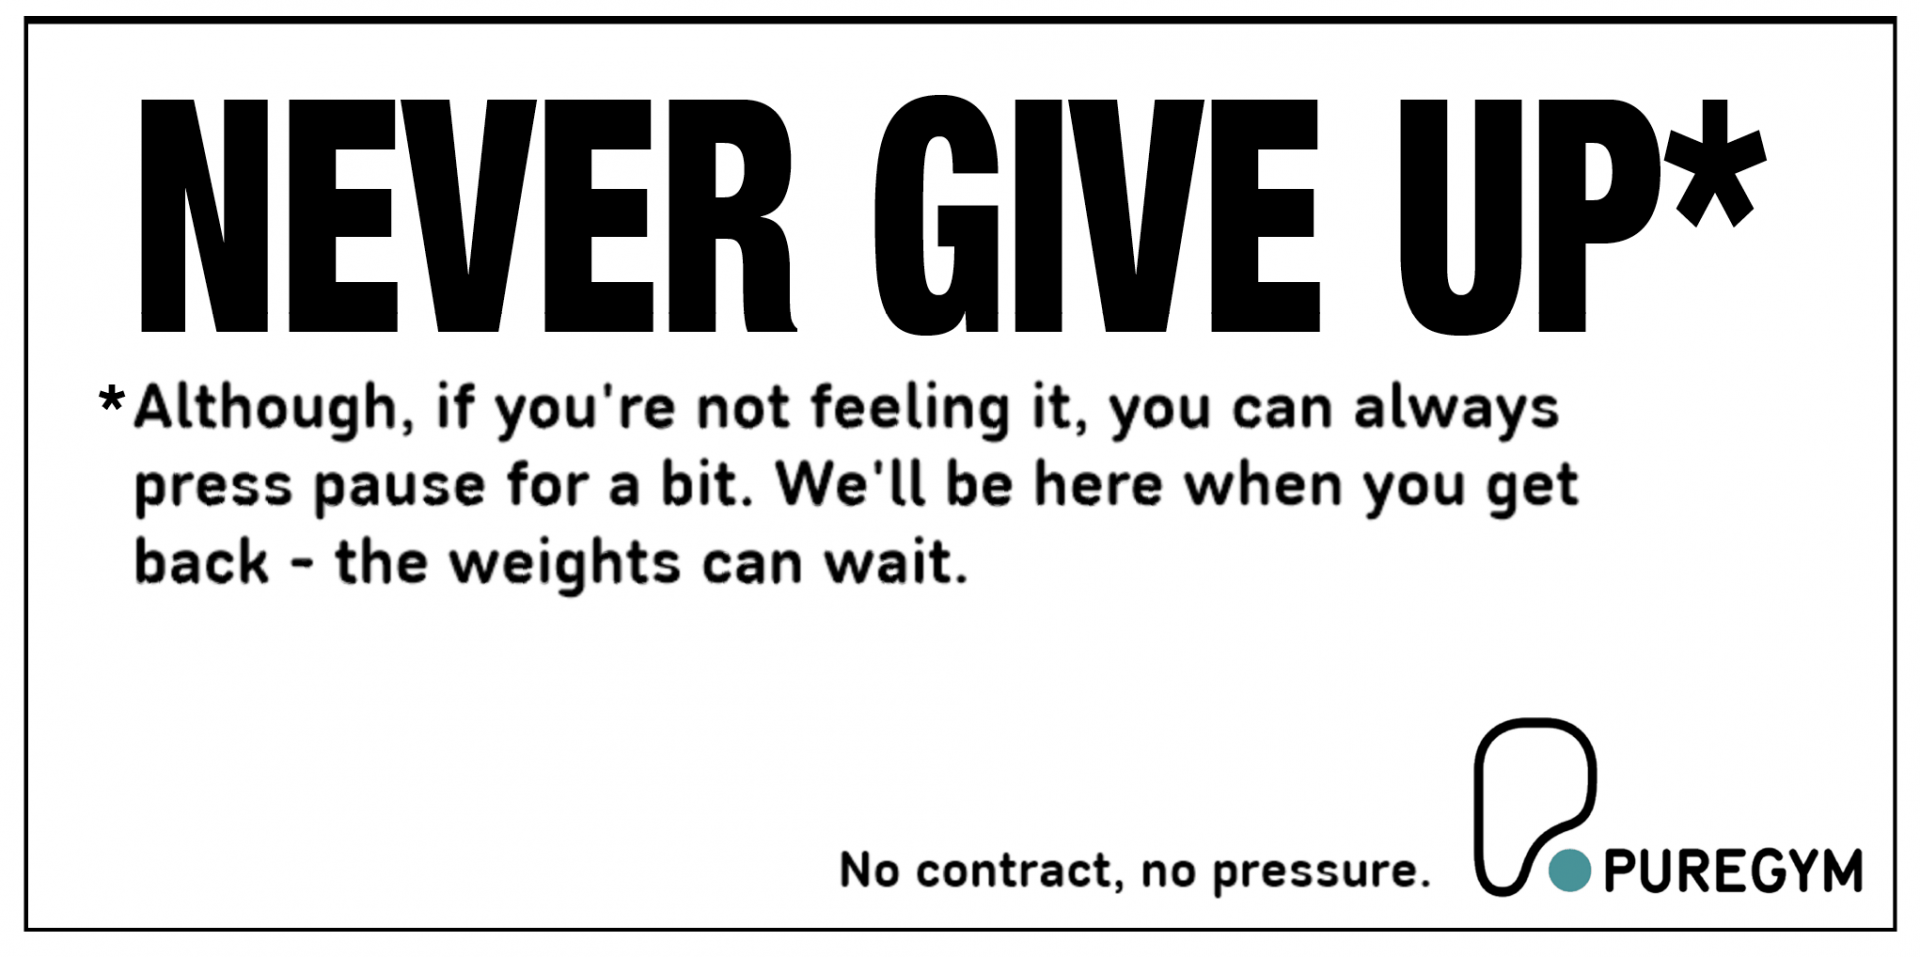 PureGym Billboard ad that reads: Never give up